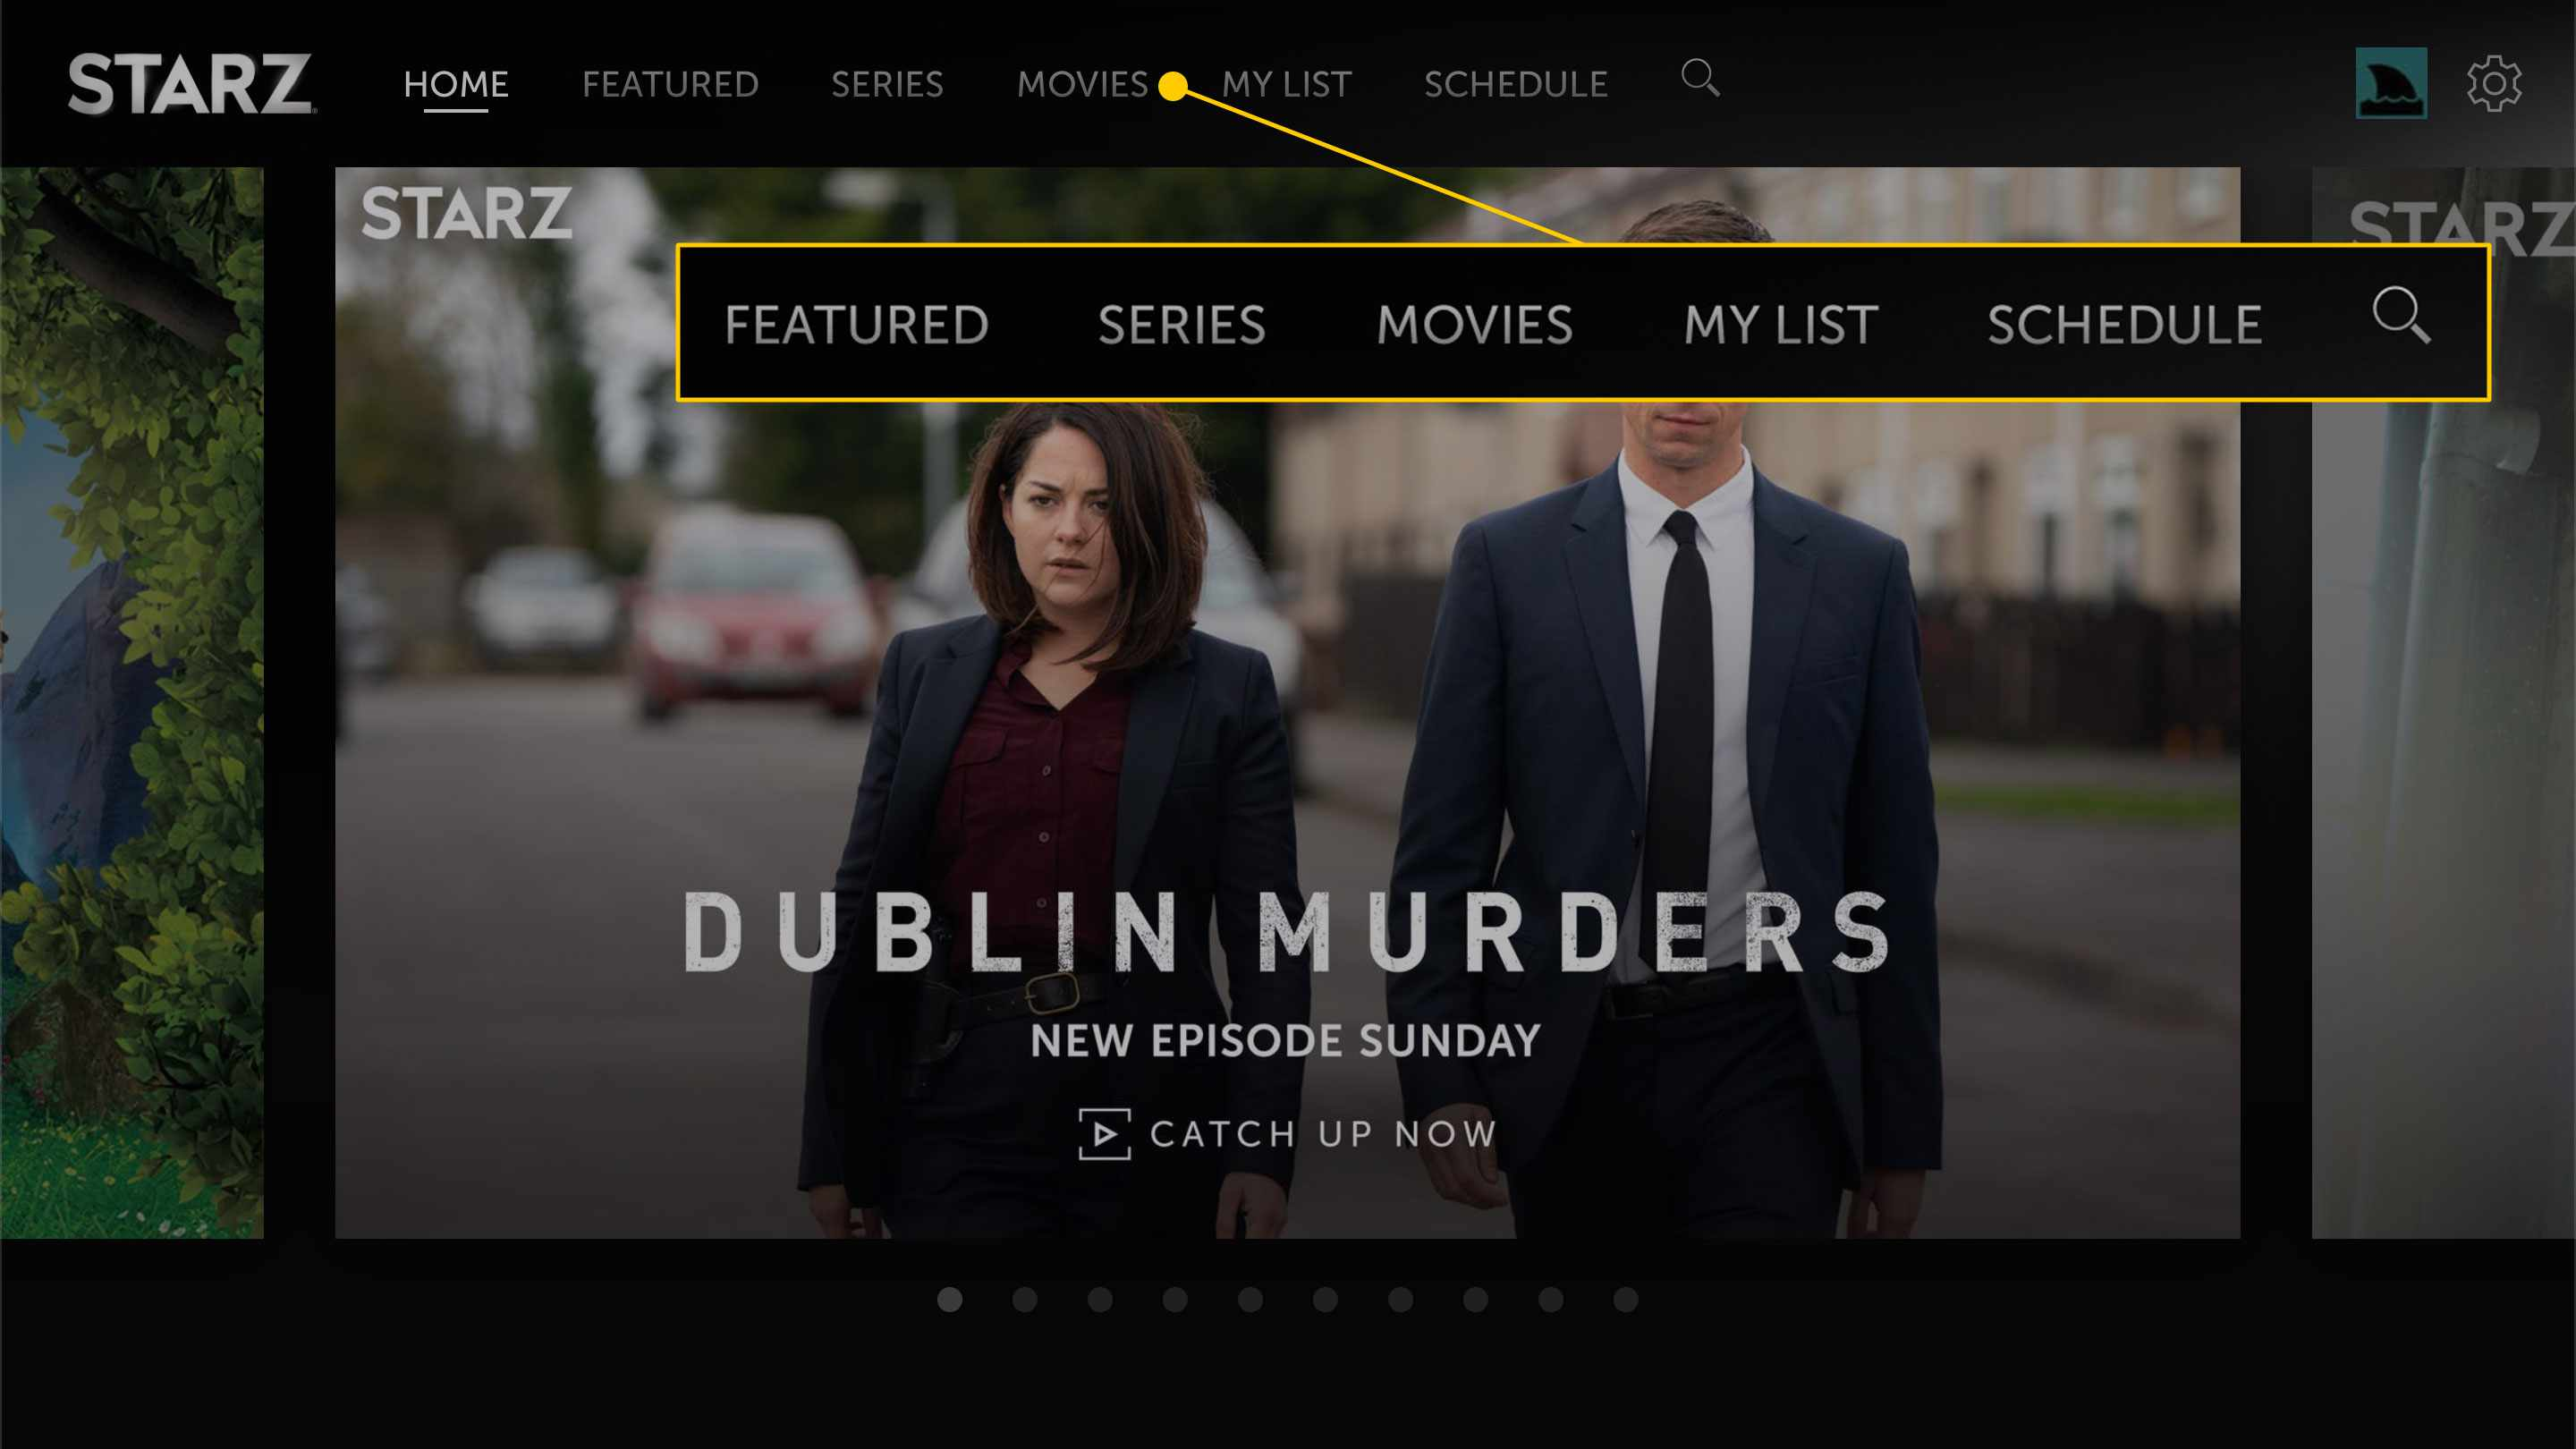 Starz home page with the menu options highlighted